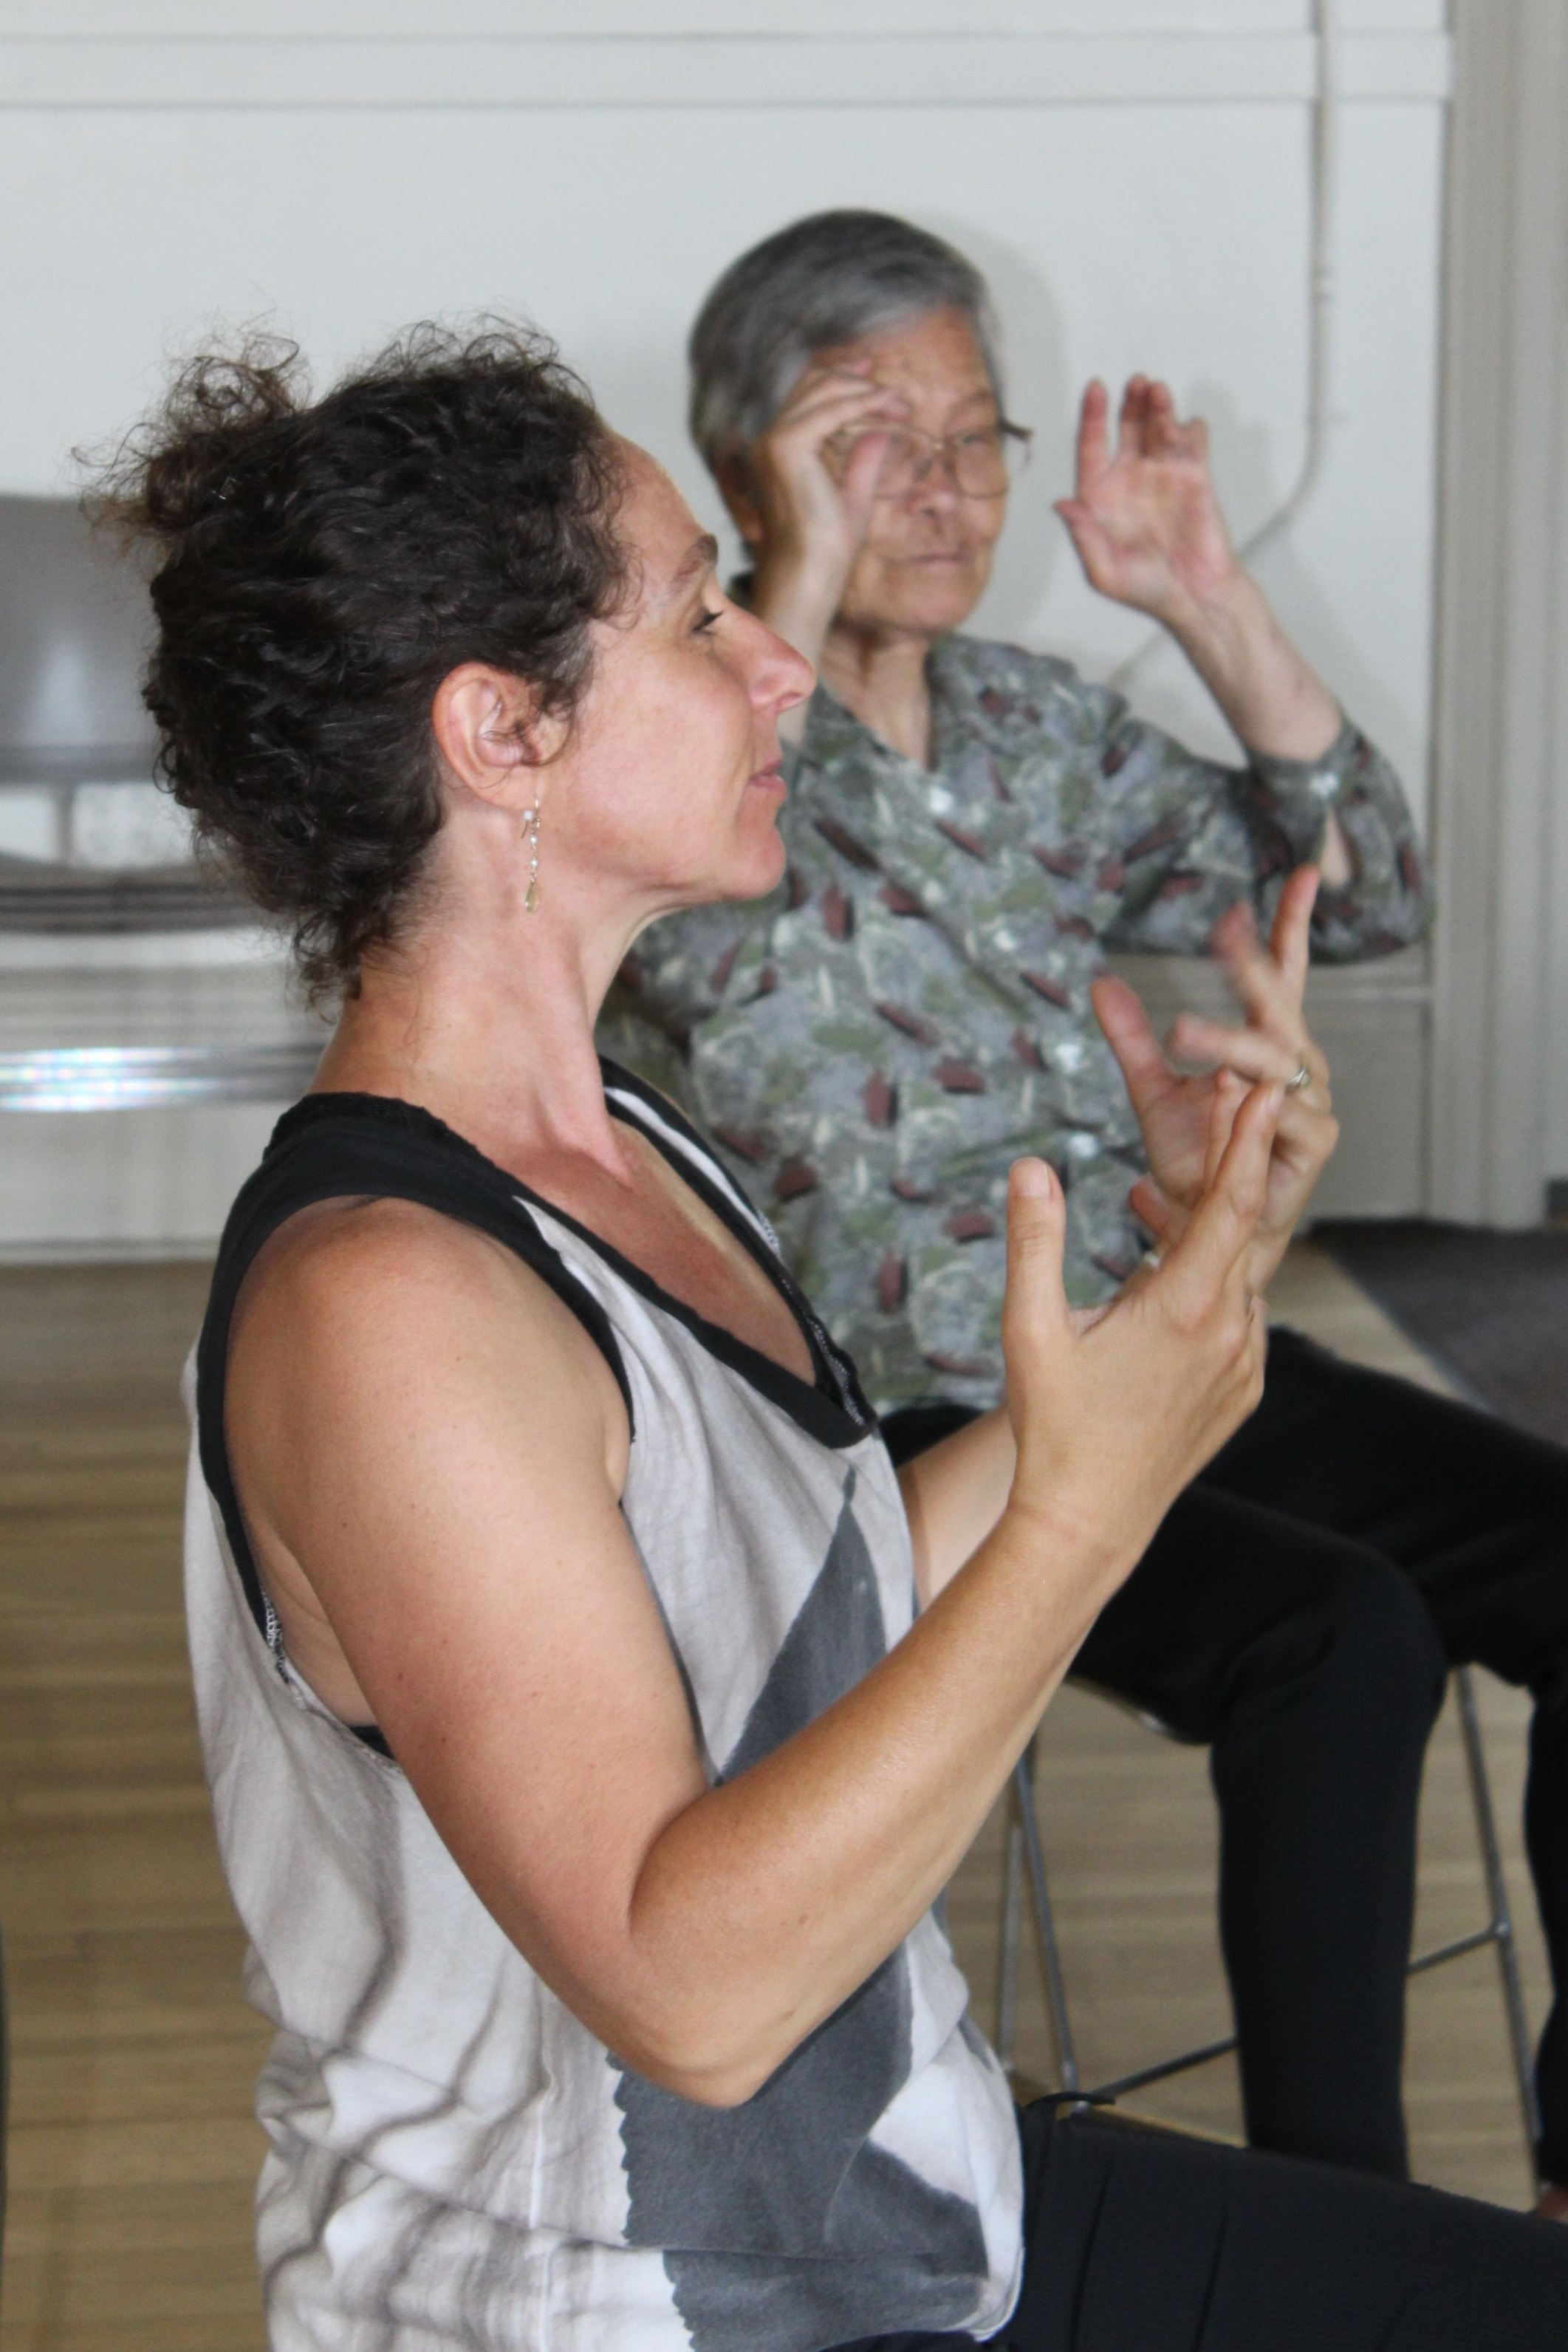 Instructor Marika Brussel and a class participant seated in chair during class.